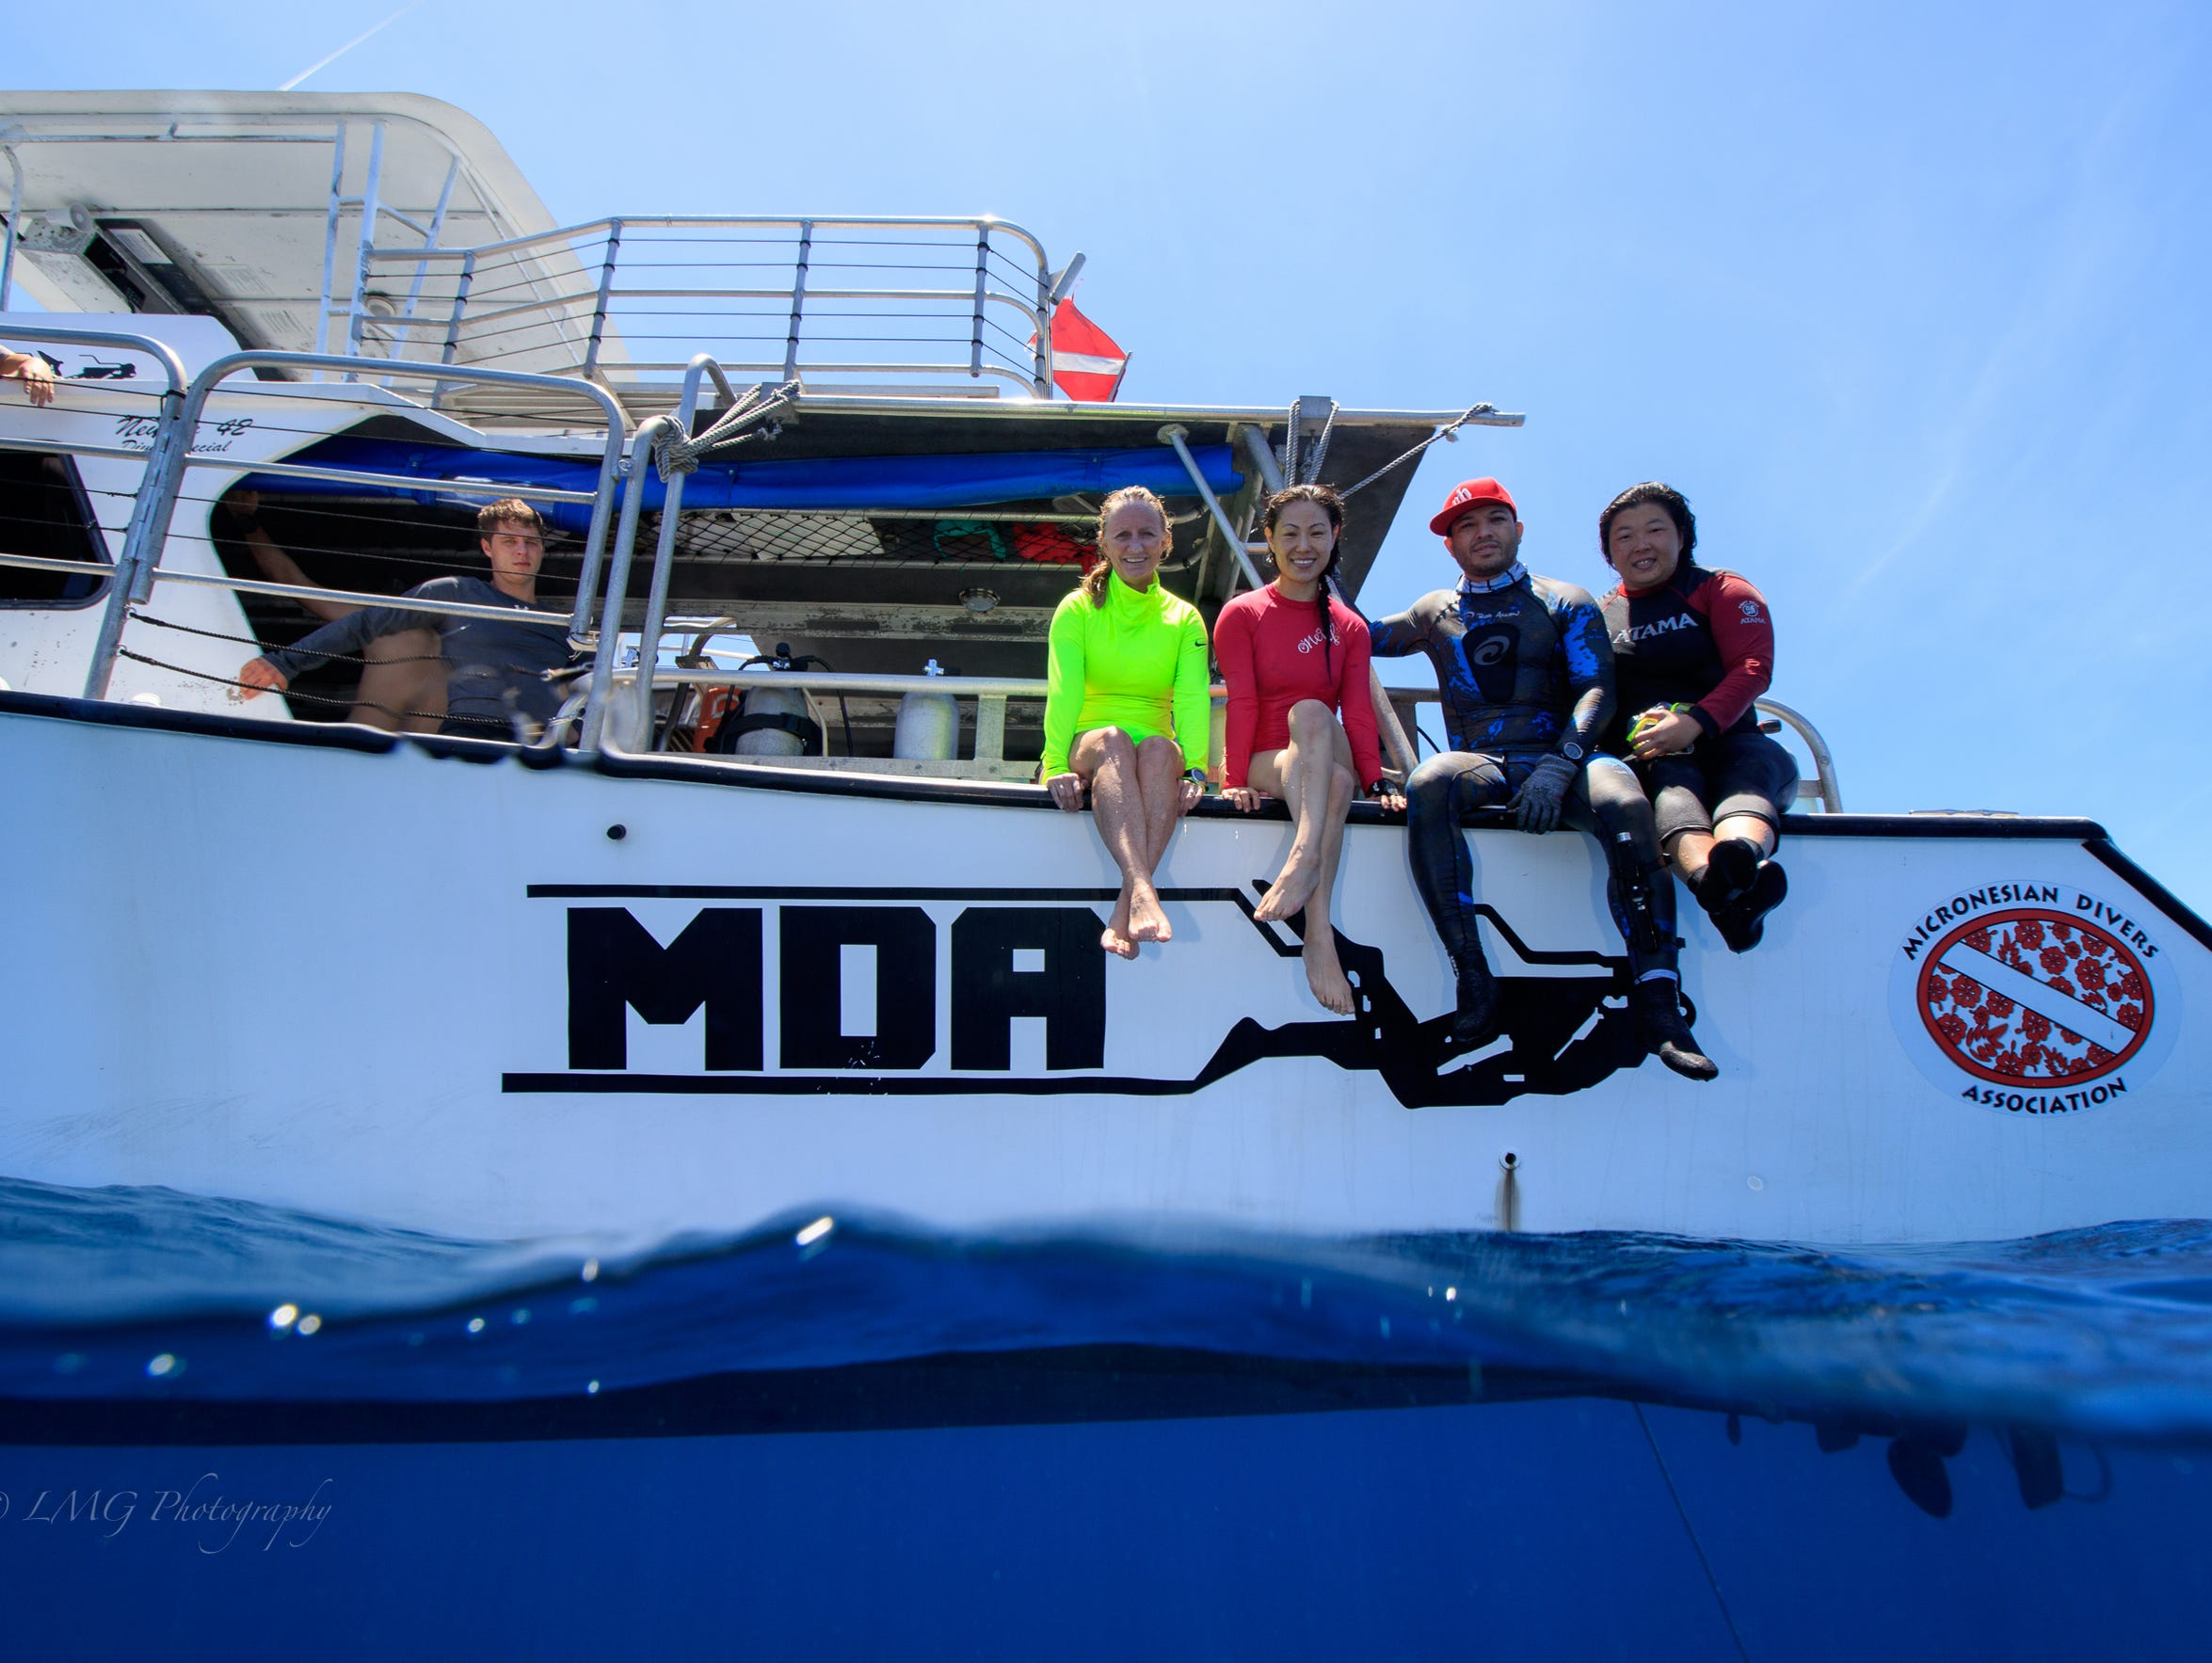 Micronesian Divers Association offers boat dives and